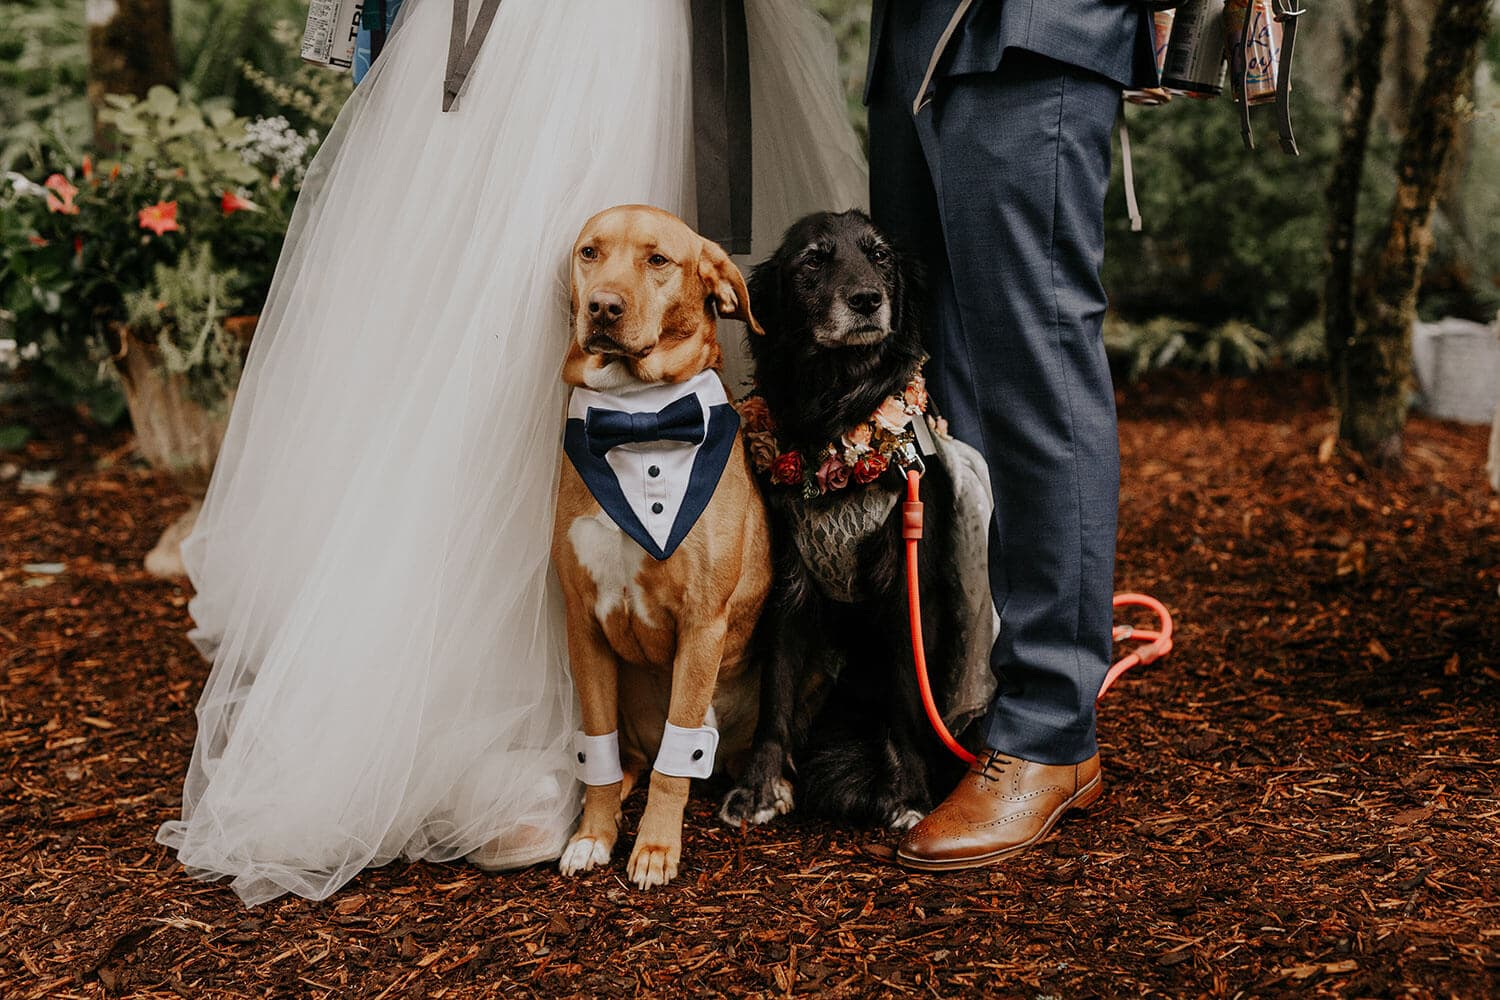 Cute dogs wearing wedding outfits and standing by the bride and groom in a forest